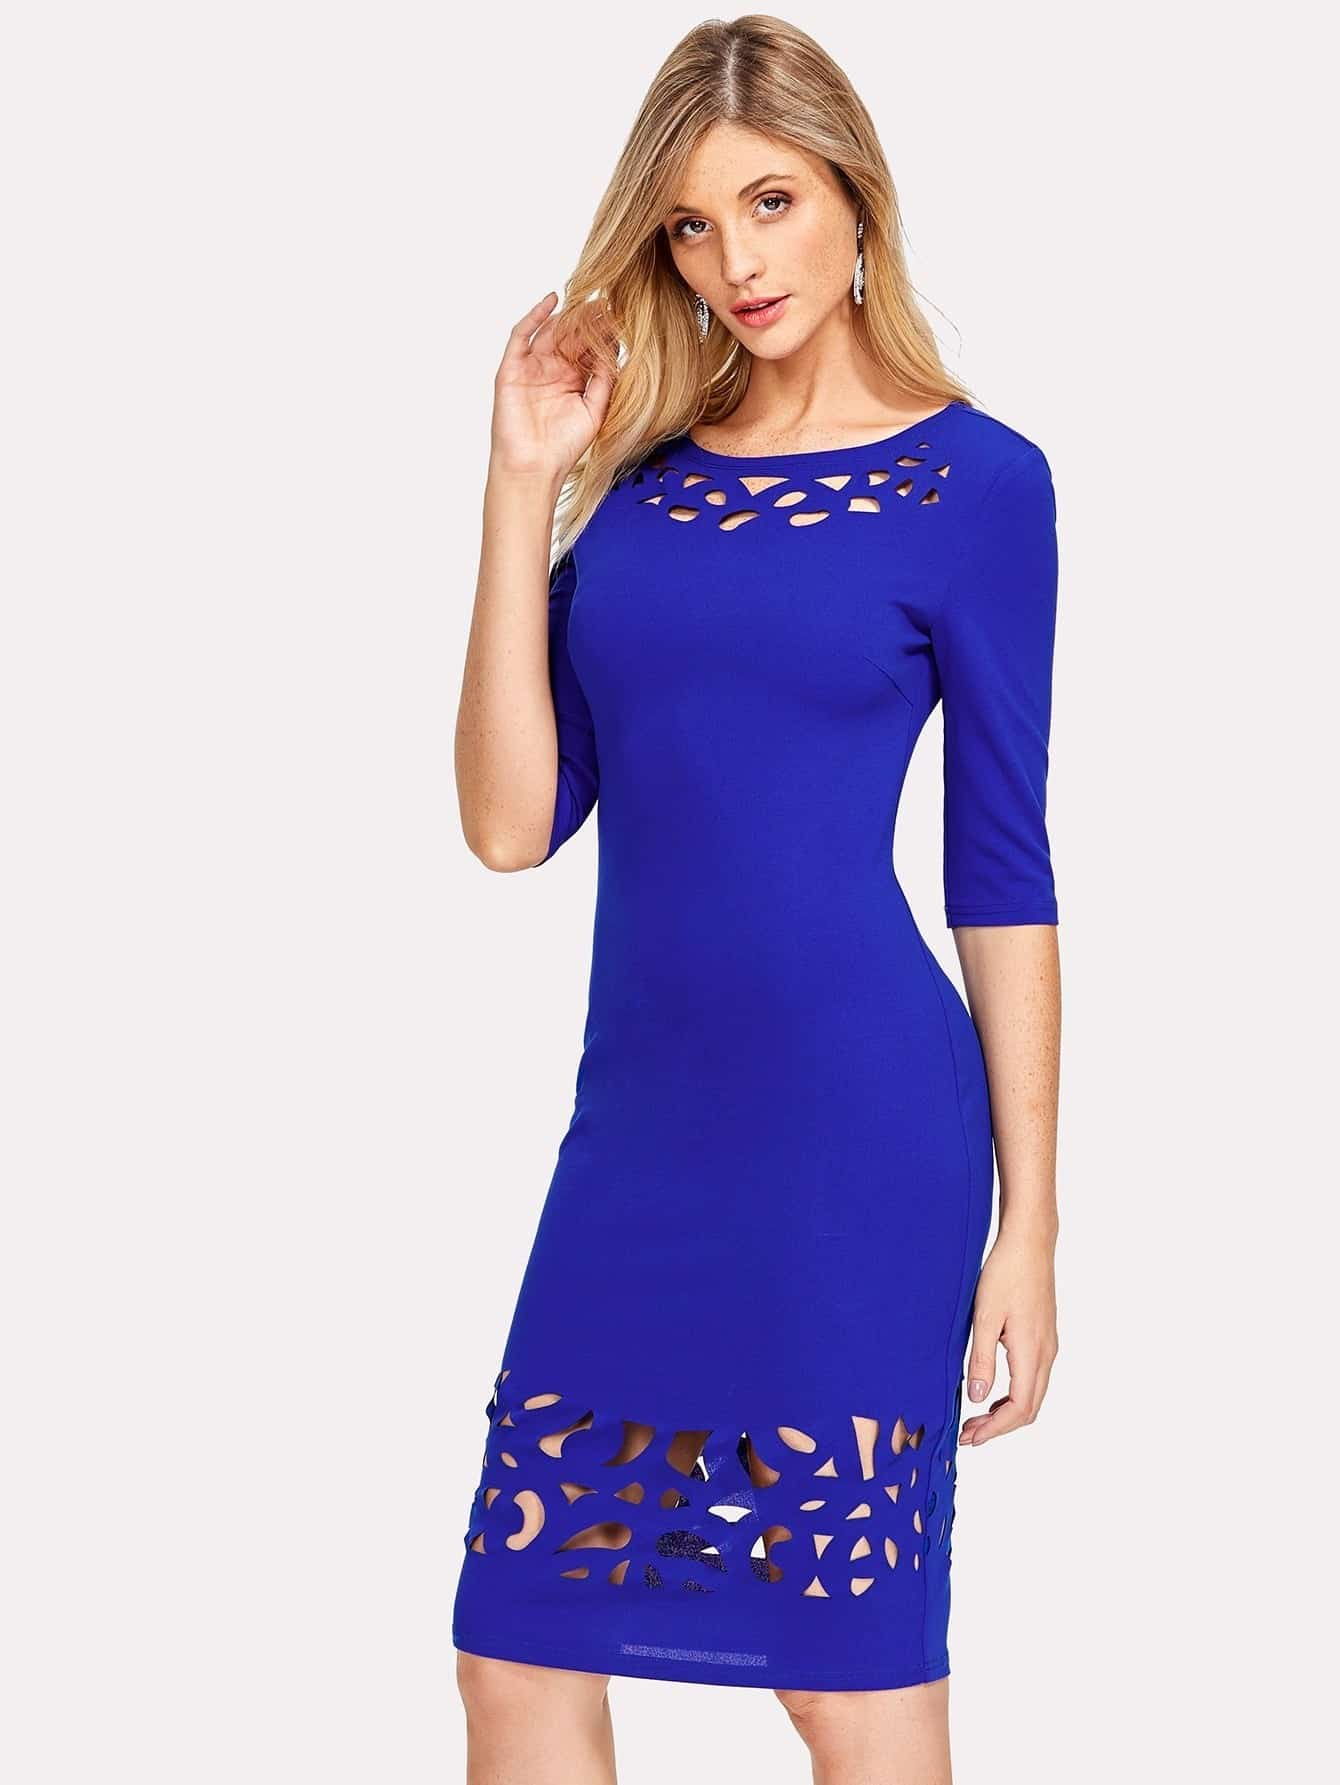 Cut Out Detail Pencil Dress cut out detail fit and flared sleeveless dress